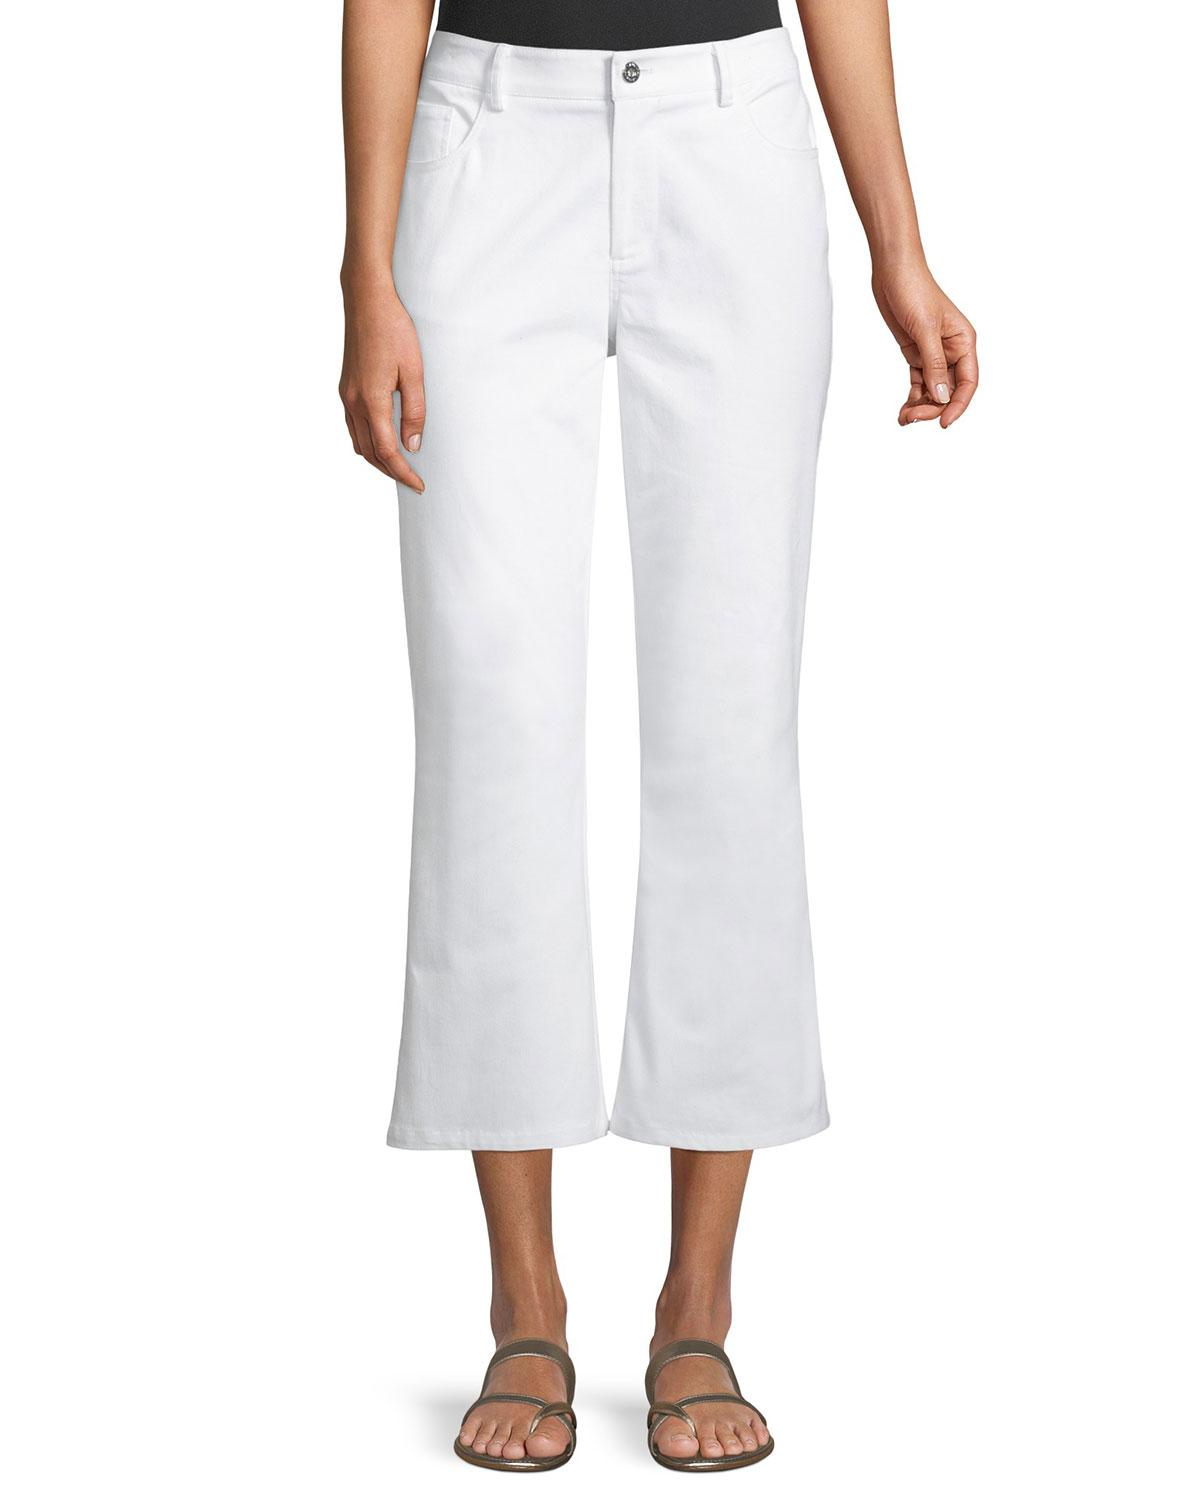 Laundry By Shelli Segal Cropped Flare Pants, White